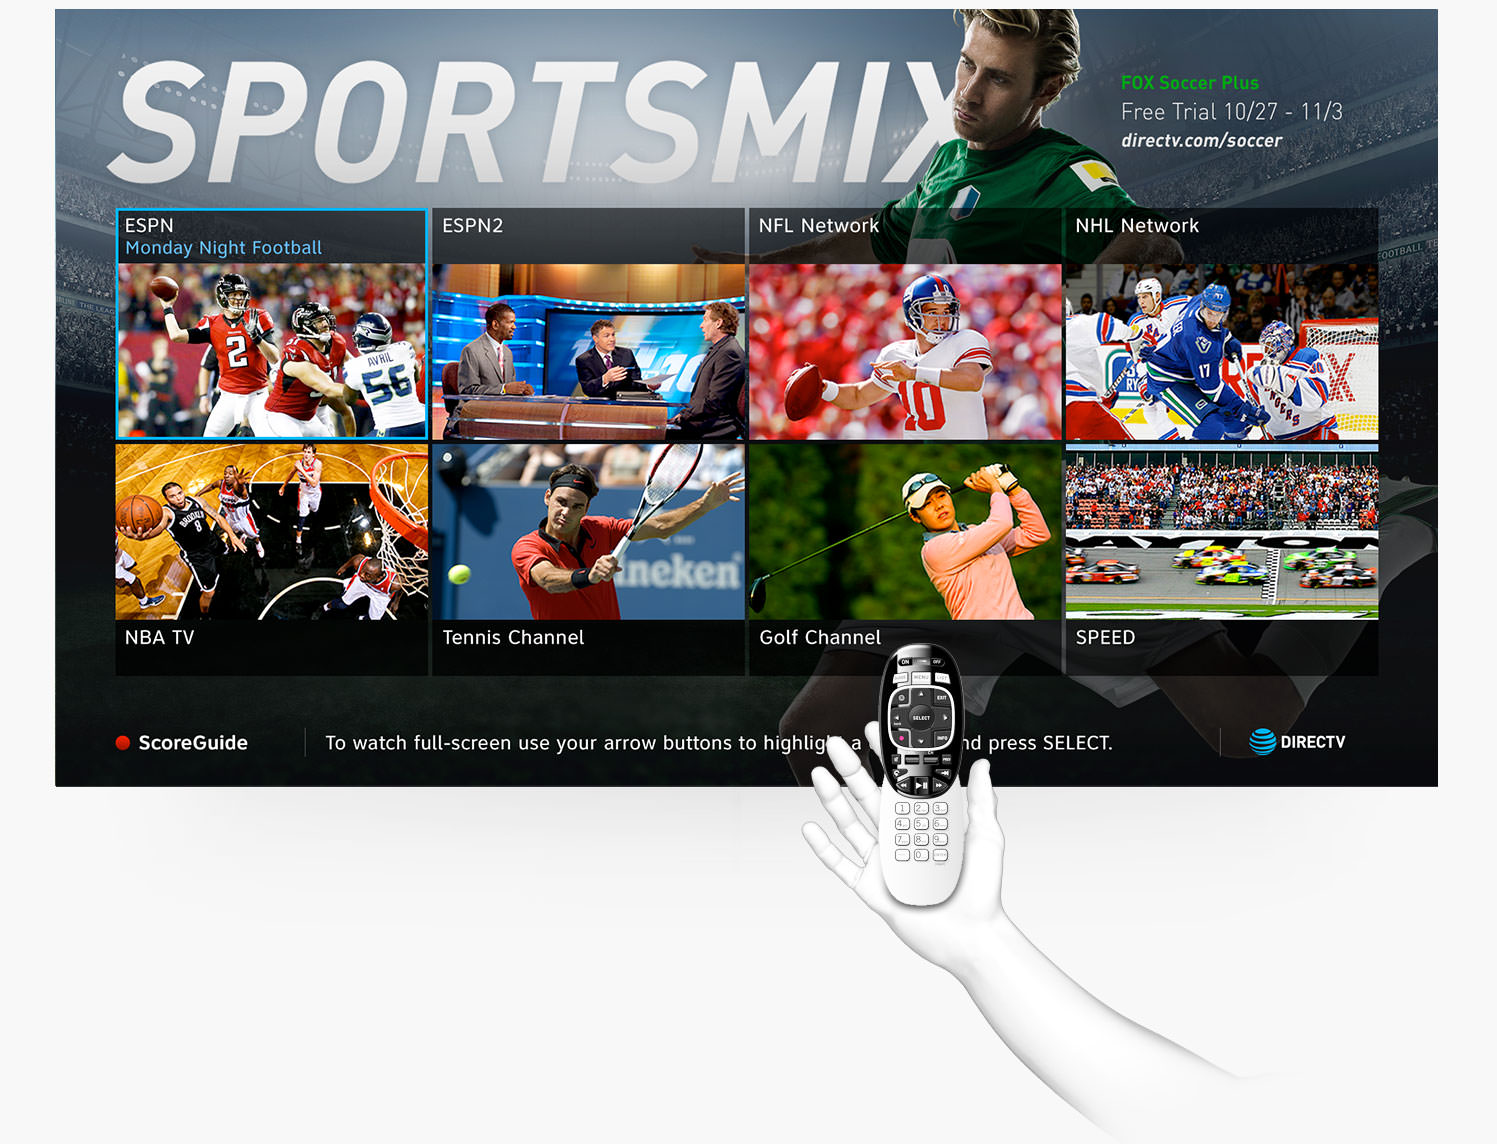 SPORTSMIX® is an exclusive on-air DIRECTV channel that broadcasts live enhanced coverage of curated content. Viewers can watch up to 8 live games at once and access sports scores,rankings, and more. Throughout the year, 25-30 additional sports, events, and specialty mix channel packages were produced with this campaign.  Jen led creative concepts and oversaw team's executions in design, animation, VIZrt, and production. She and her team partnered with x-functional teams - content strategy, sports marketing, engineering, production ops, broadcast center, traffic ops, interactive advertising,etc to deliver all assets.  Team credit: Jessica Cigno - Art Director;Nigel Teixeira - Broadcast Graphics / VIZ Manager;Corinna Lietz, Greden Opio -Designers; Abby Lane, Ken Bae - Production Designers.